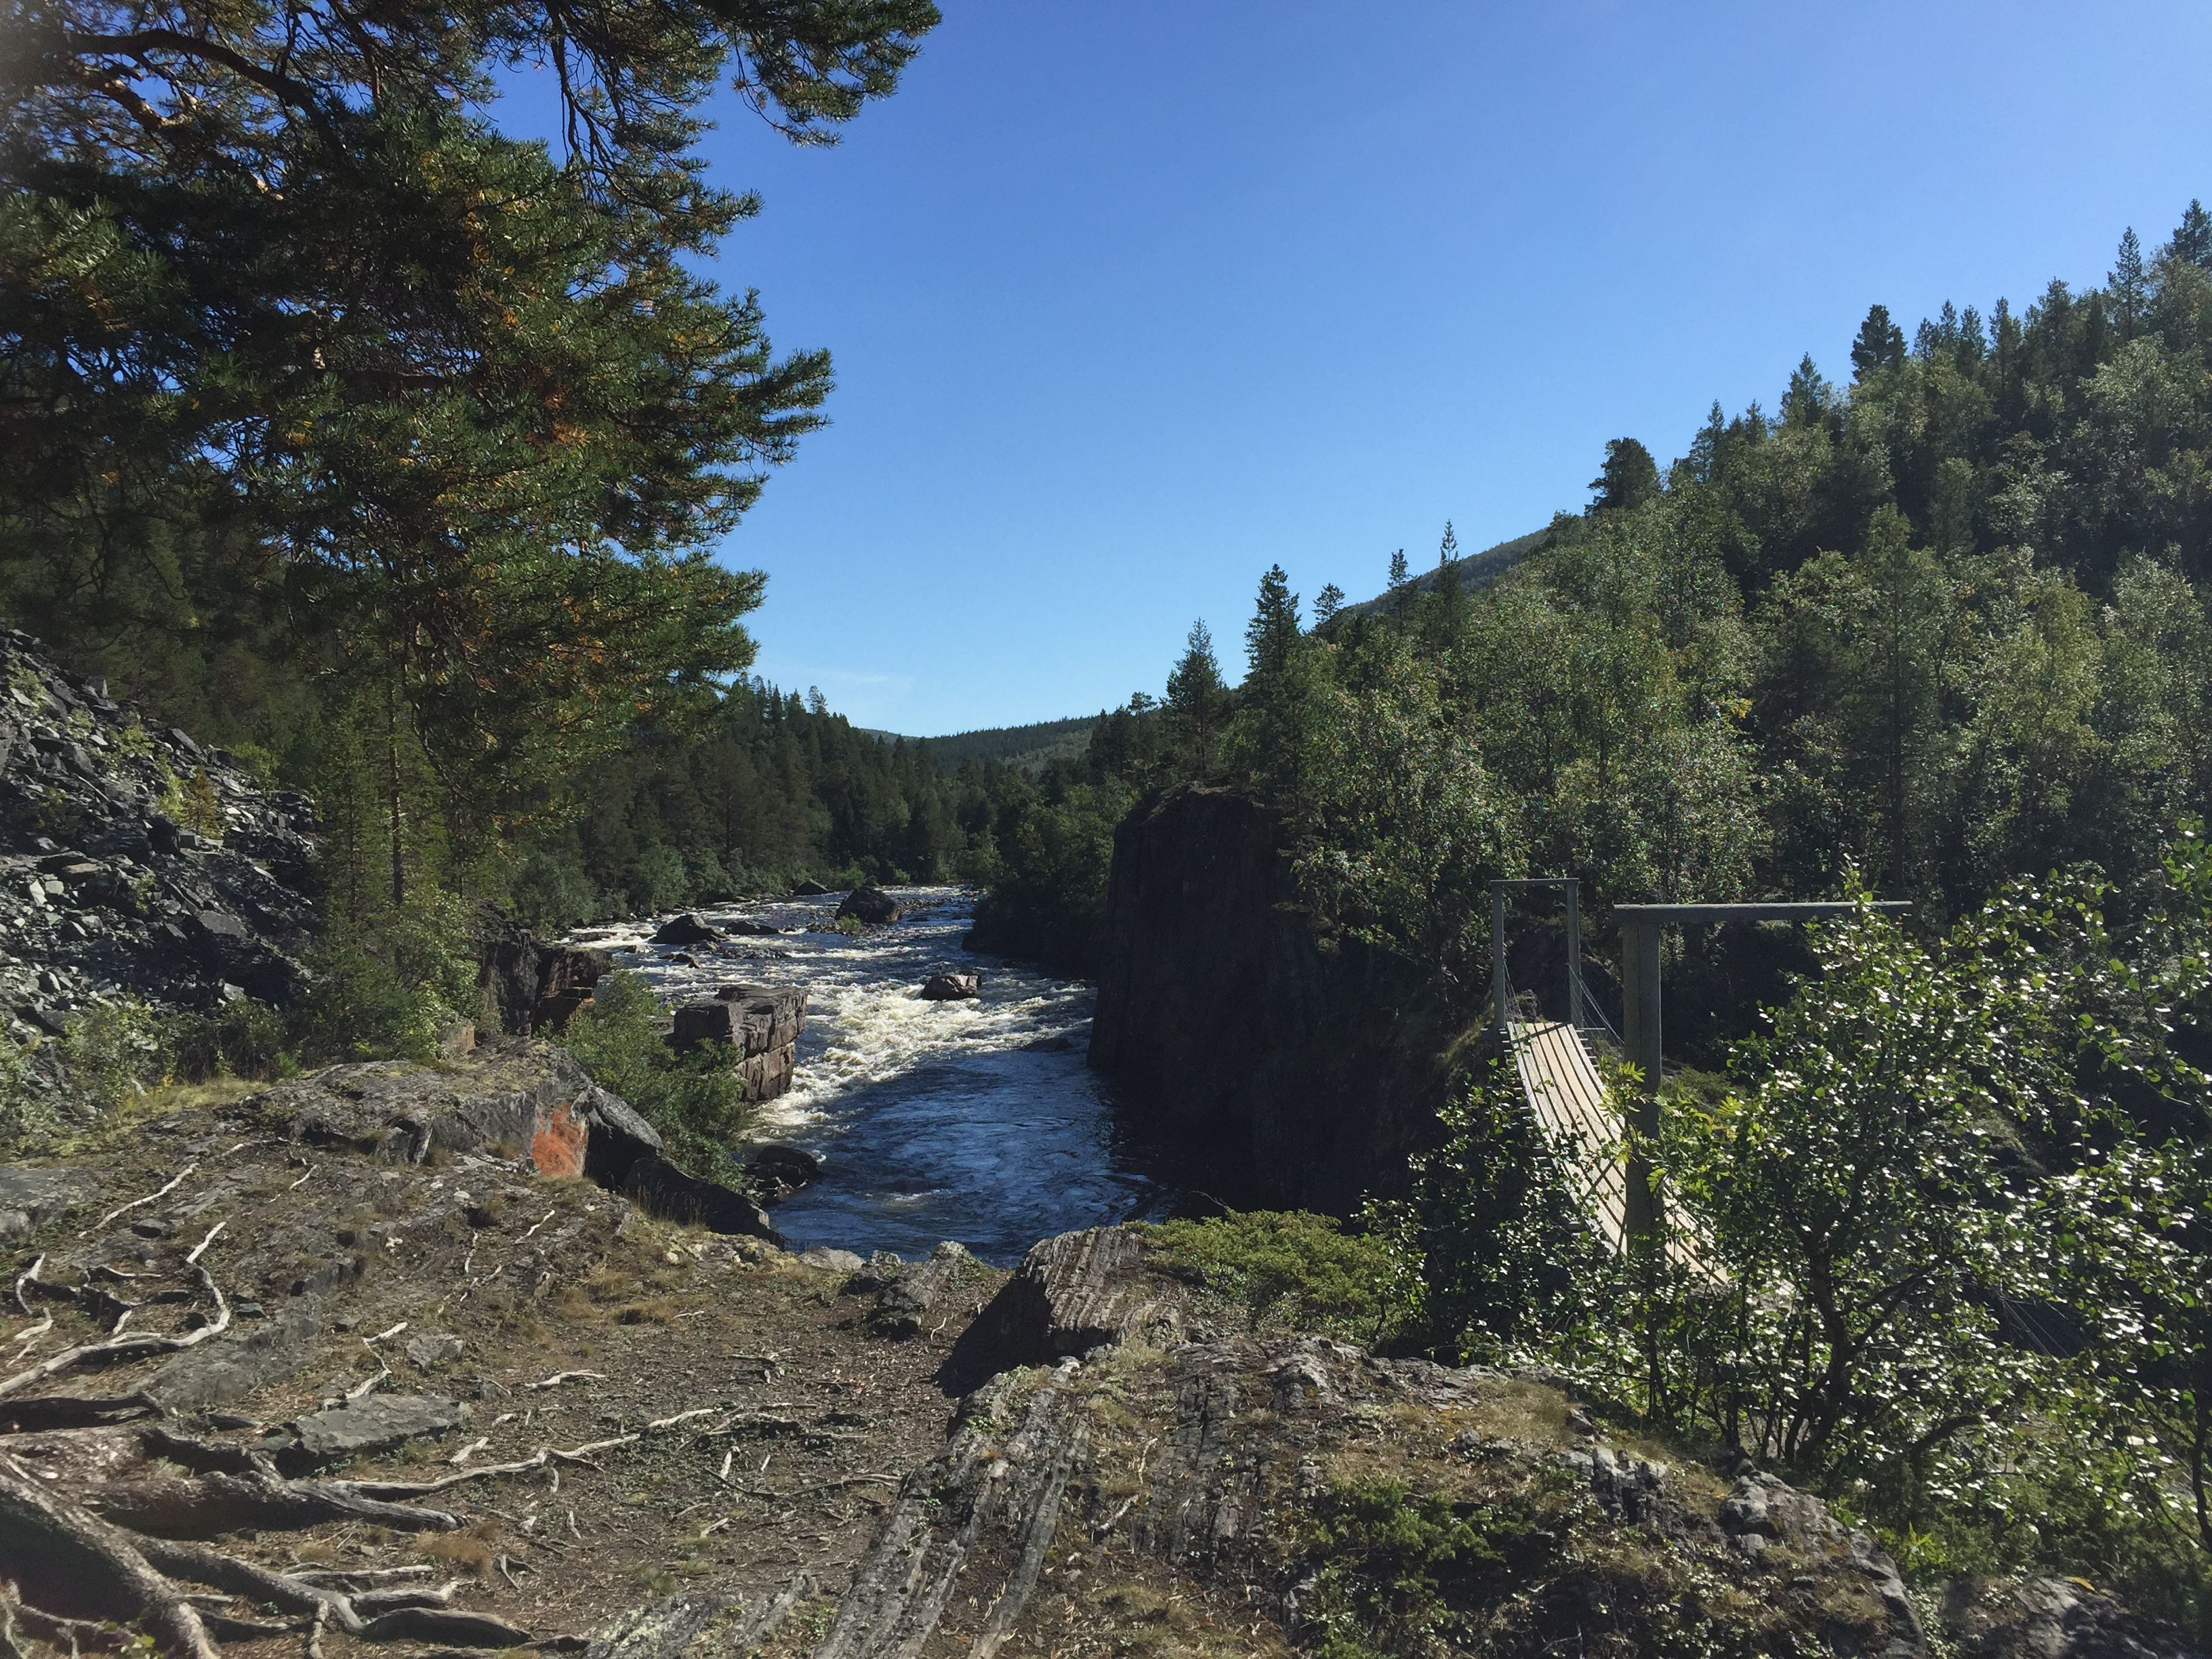 Guided tour to Imofossen